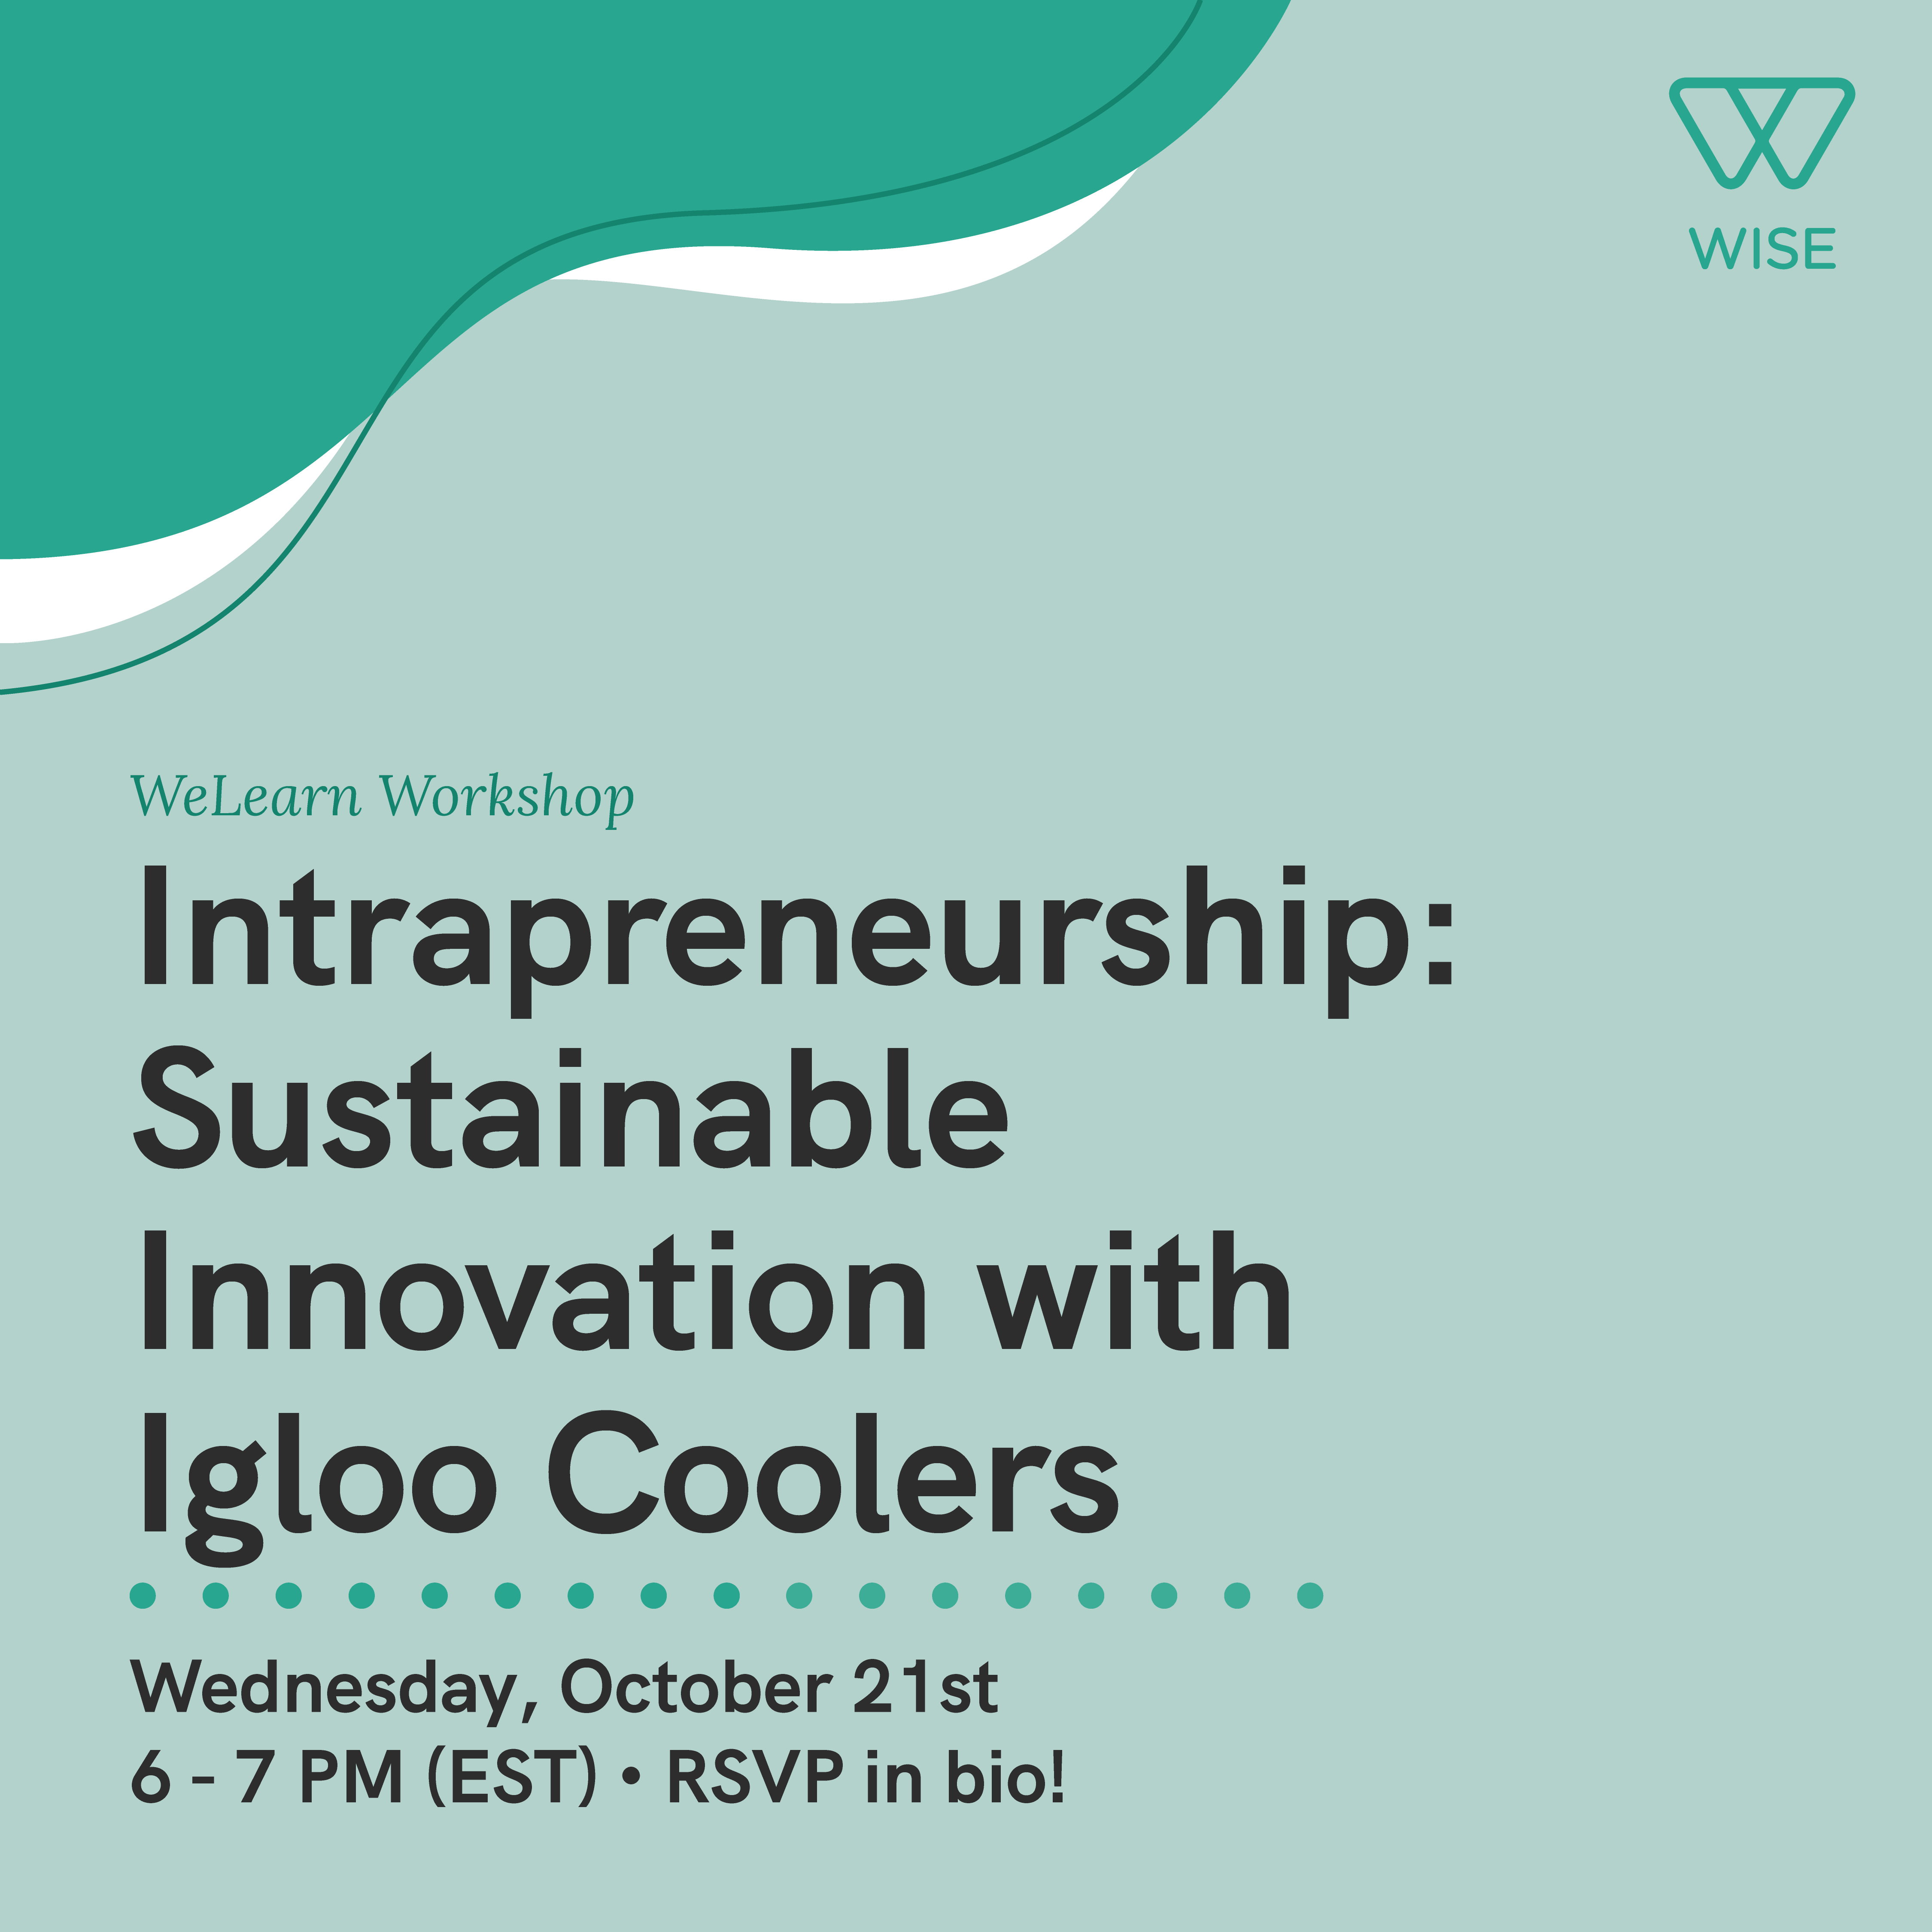 """Event flyer for """"Intrapreneurship: Sustainable Innovatopn with Igloo Coolers""""."""